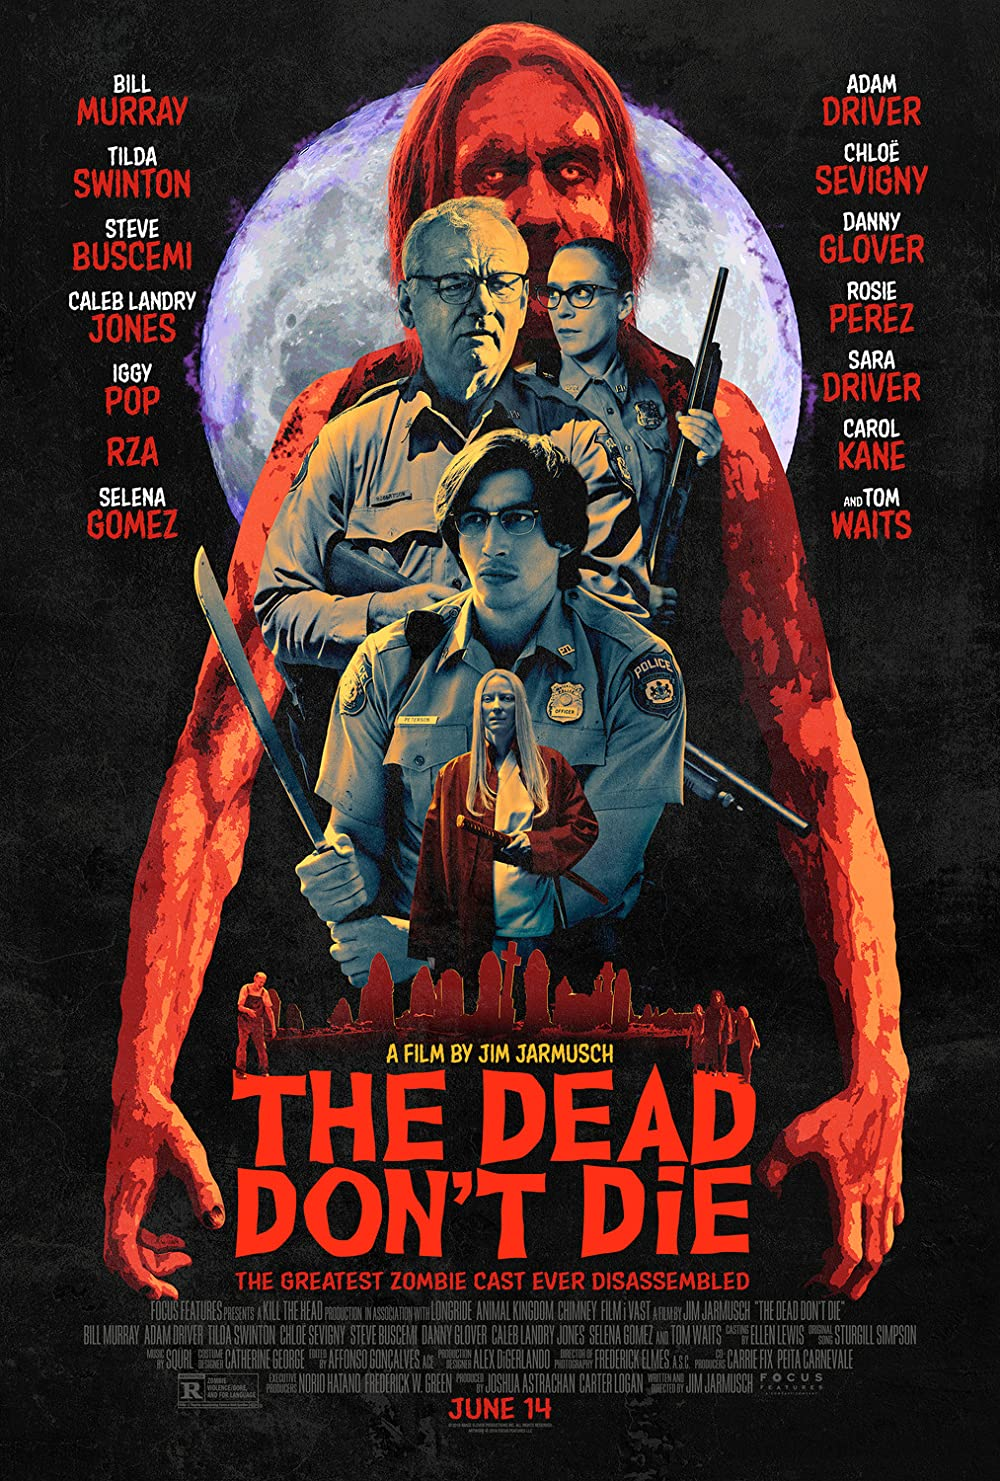 The Dead Dont Die 2019 Hindi ORG Dual Audio 720p BluRay ESubs 1GB x264 AAC